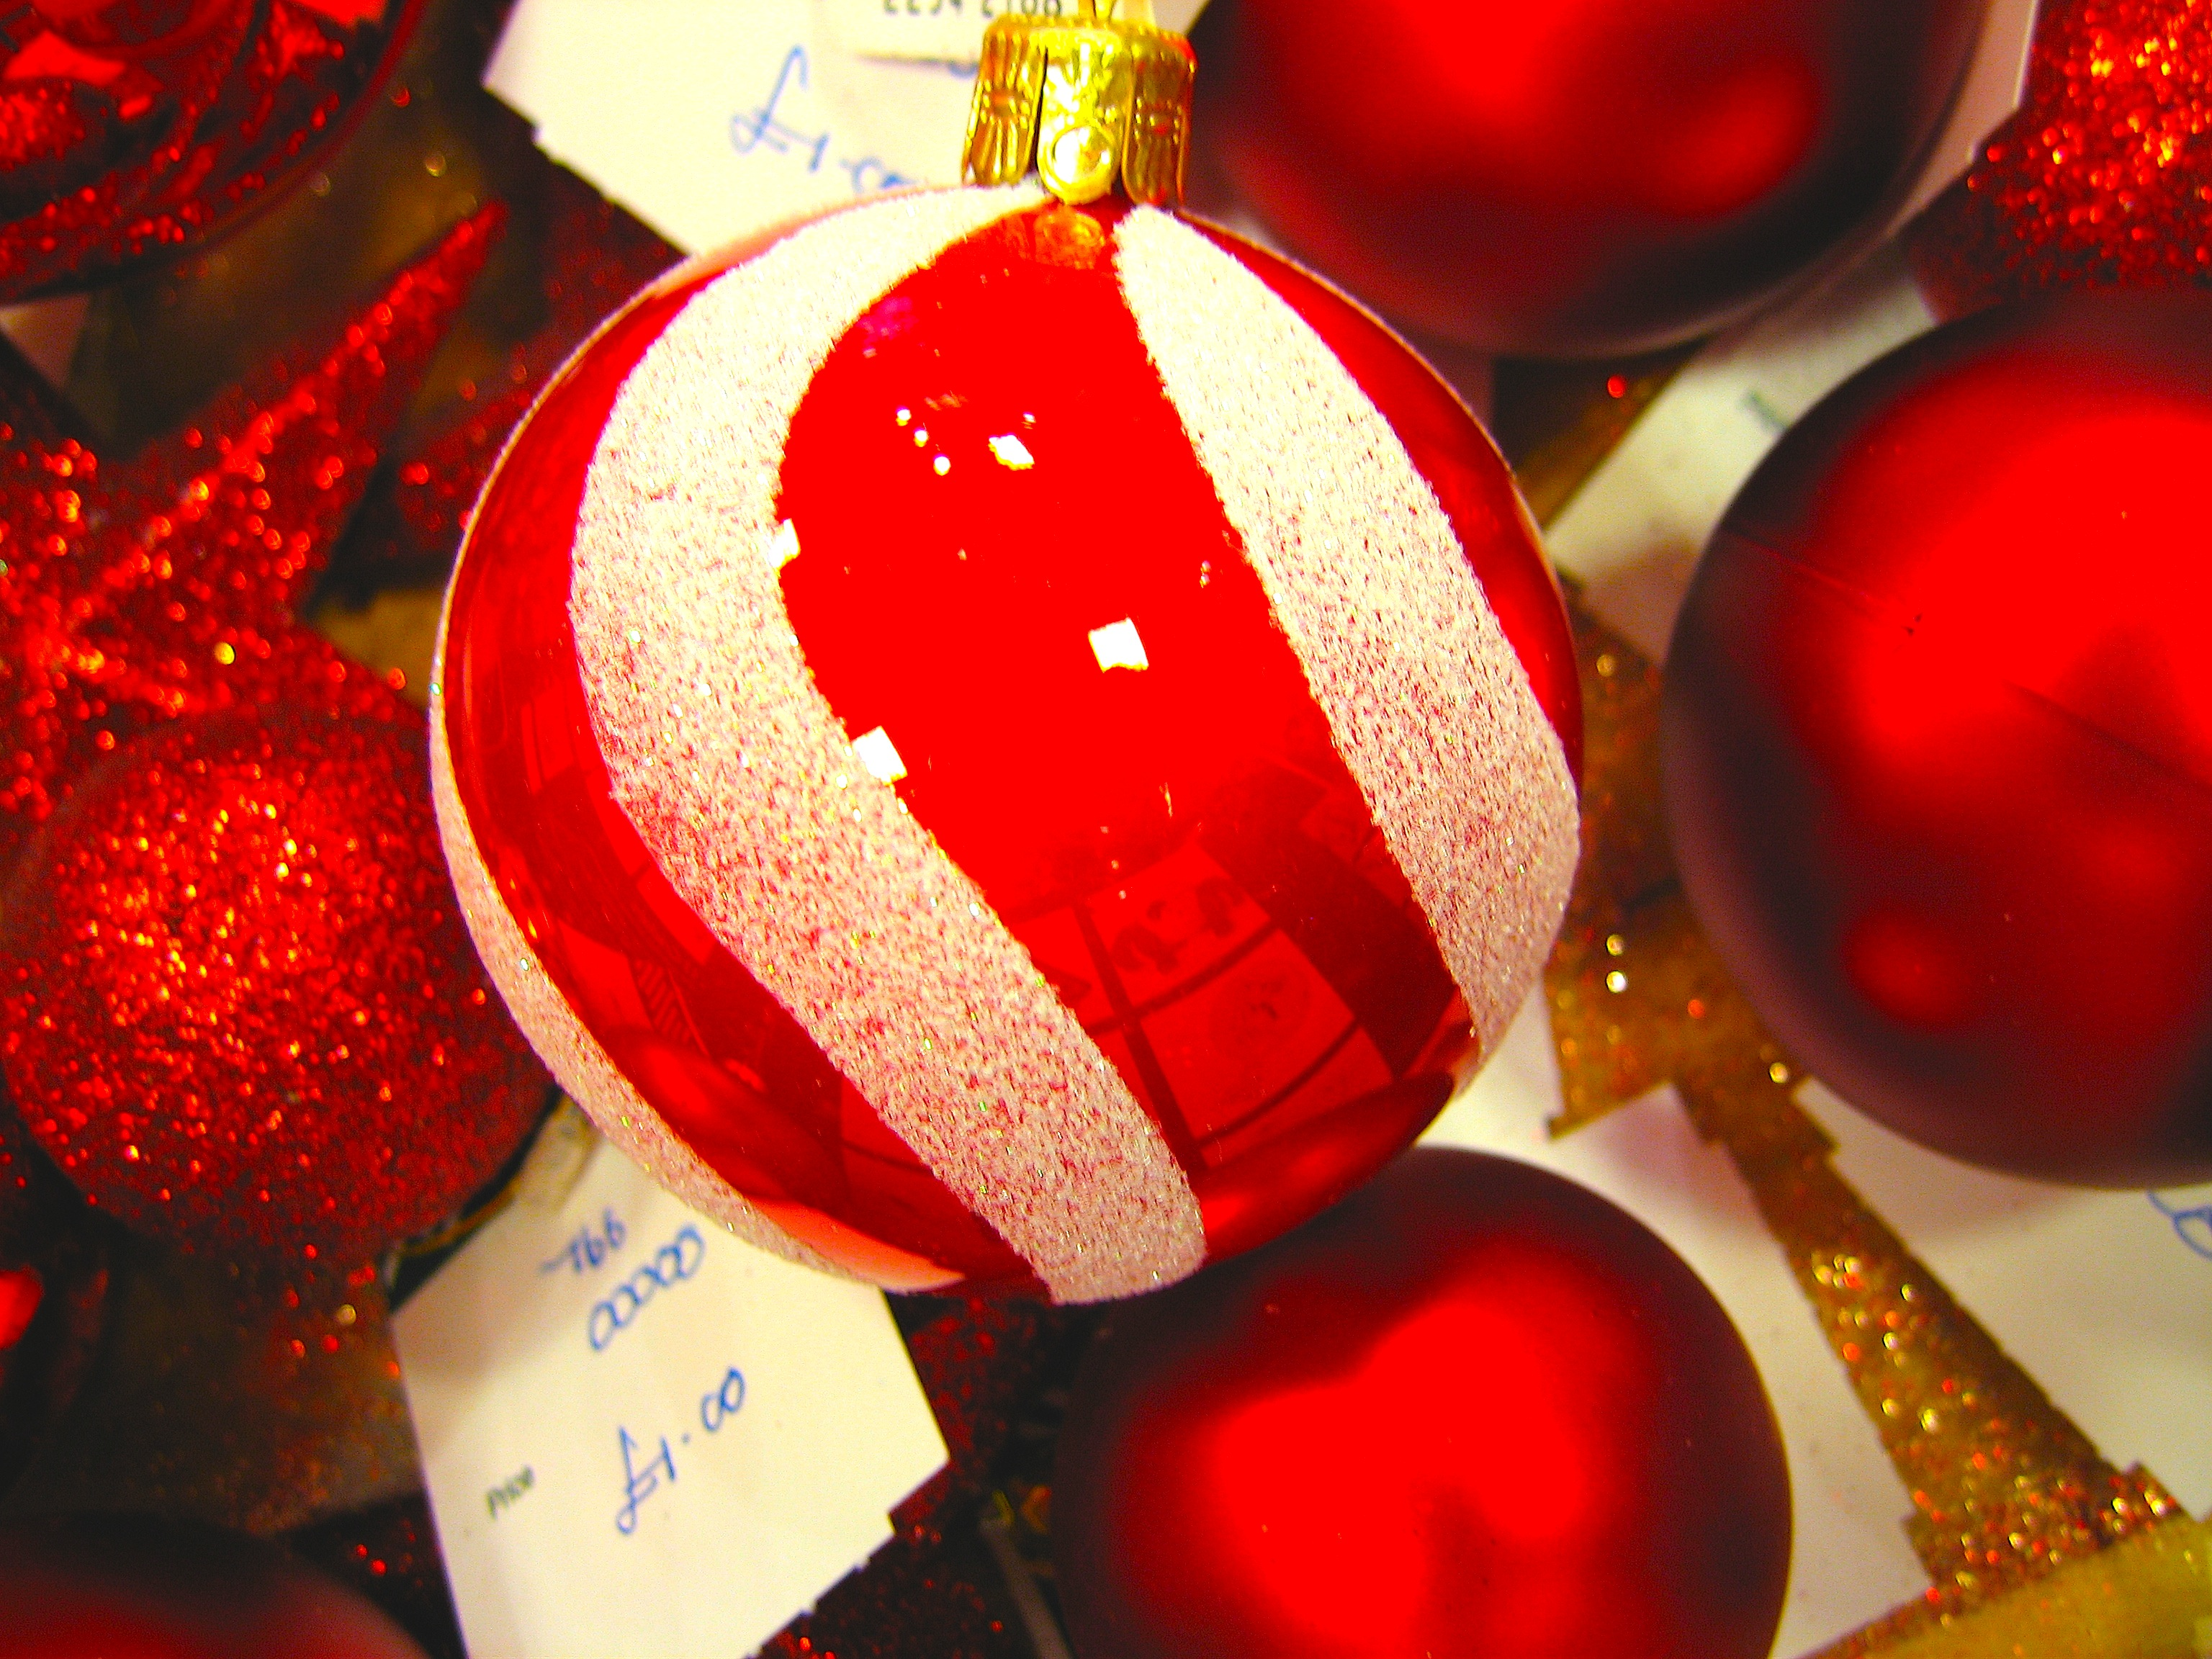 Red glass christmas ornaments -  Baubles Glass Red White Frosted In Shop Christmas Decorations Display Some Shattered And Lonely And Mixed With Rubbish Junk Garbage Tweaked 2 Dhd Jpg